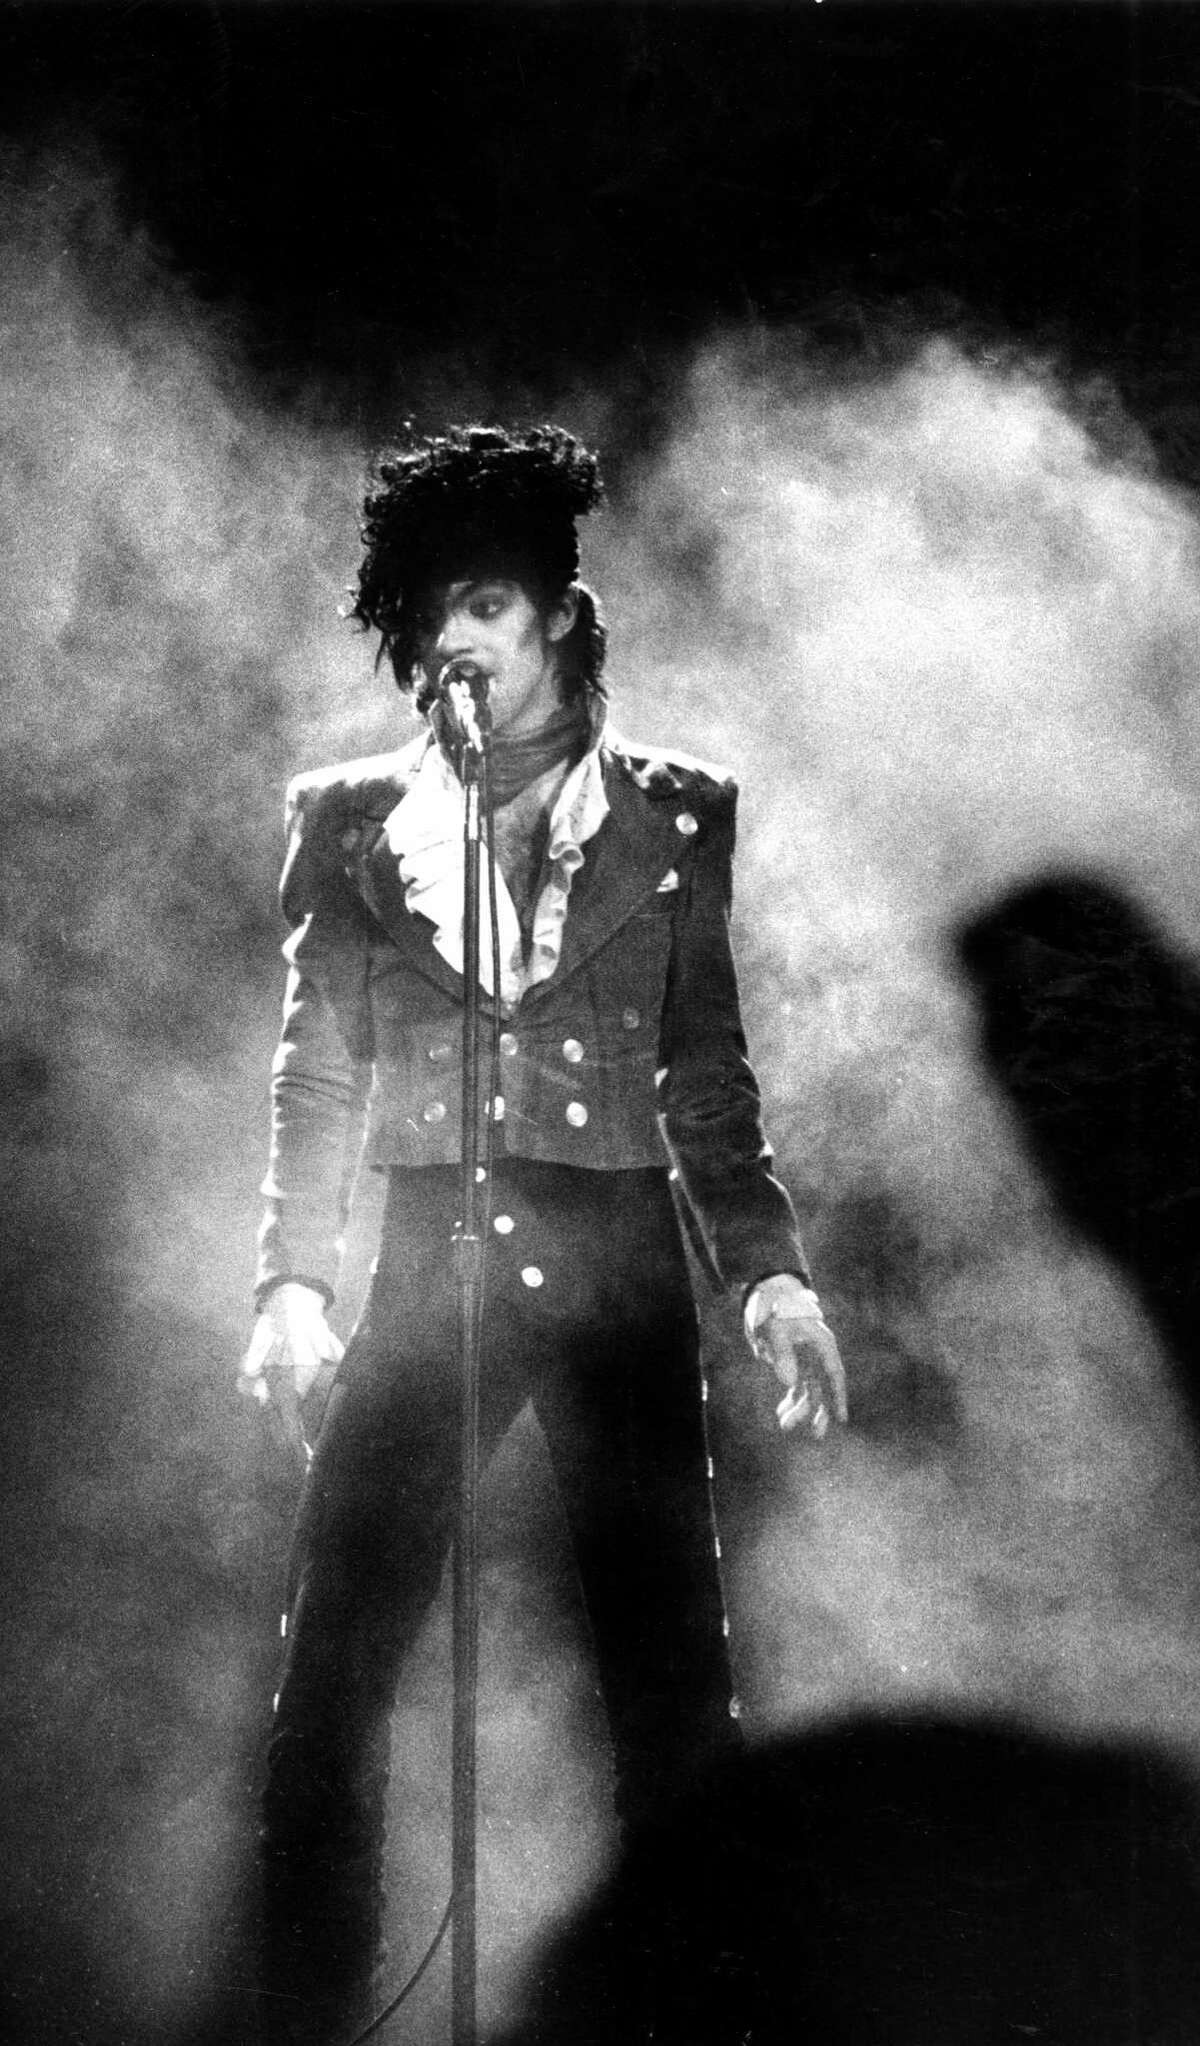 Prince performs at the Cow Palace in 1985.